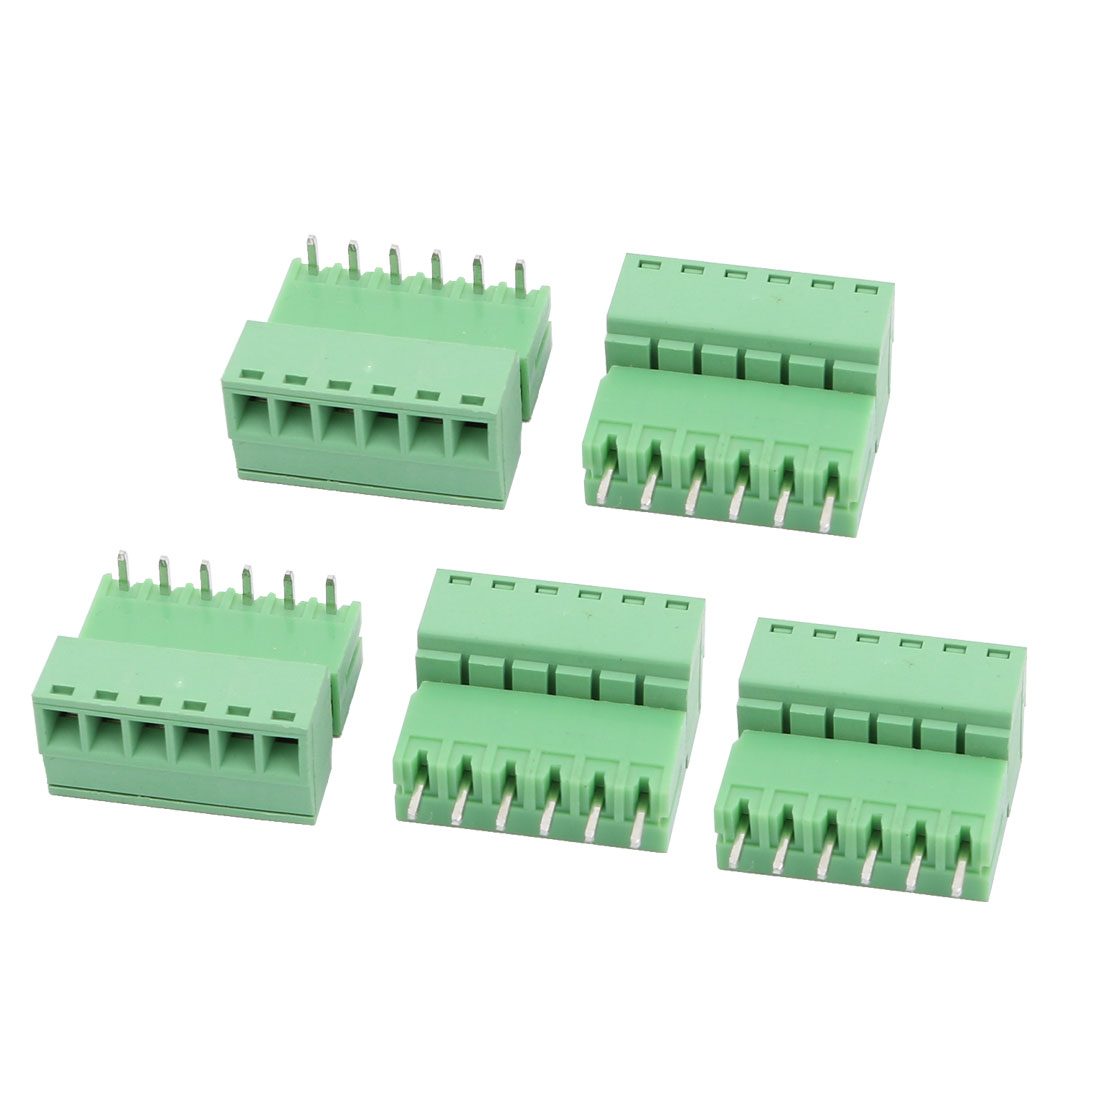 5Sets AC 300V 8A 3.5mm Pitch 6P PCB Terminal Block Female Male Wire Connector